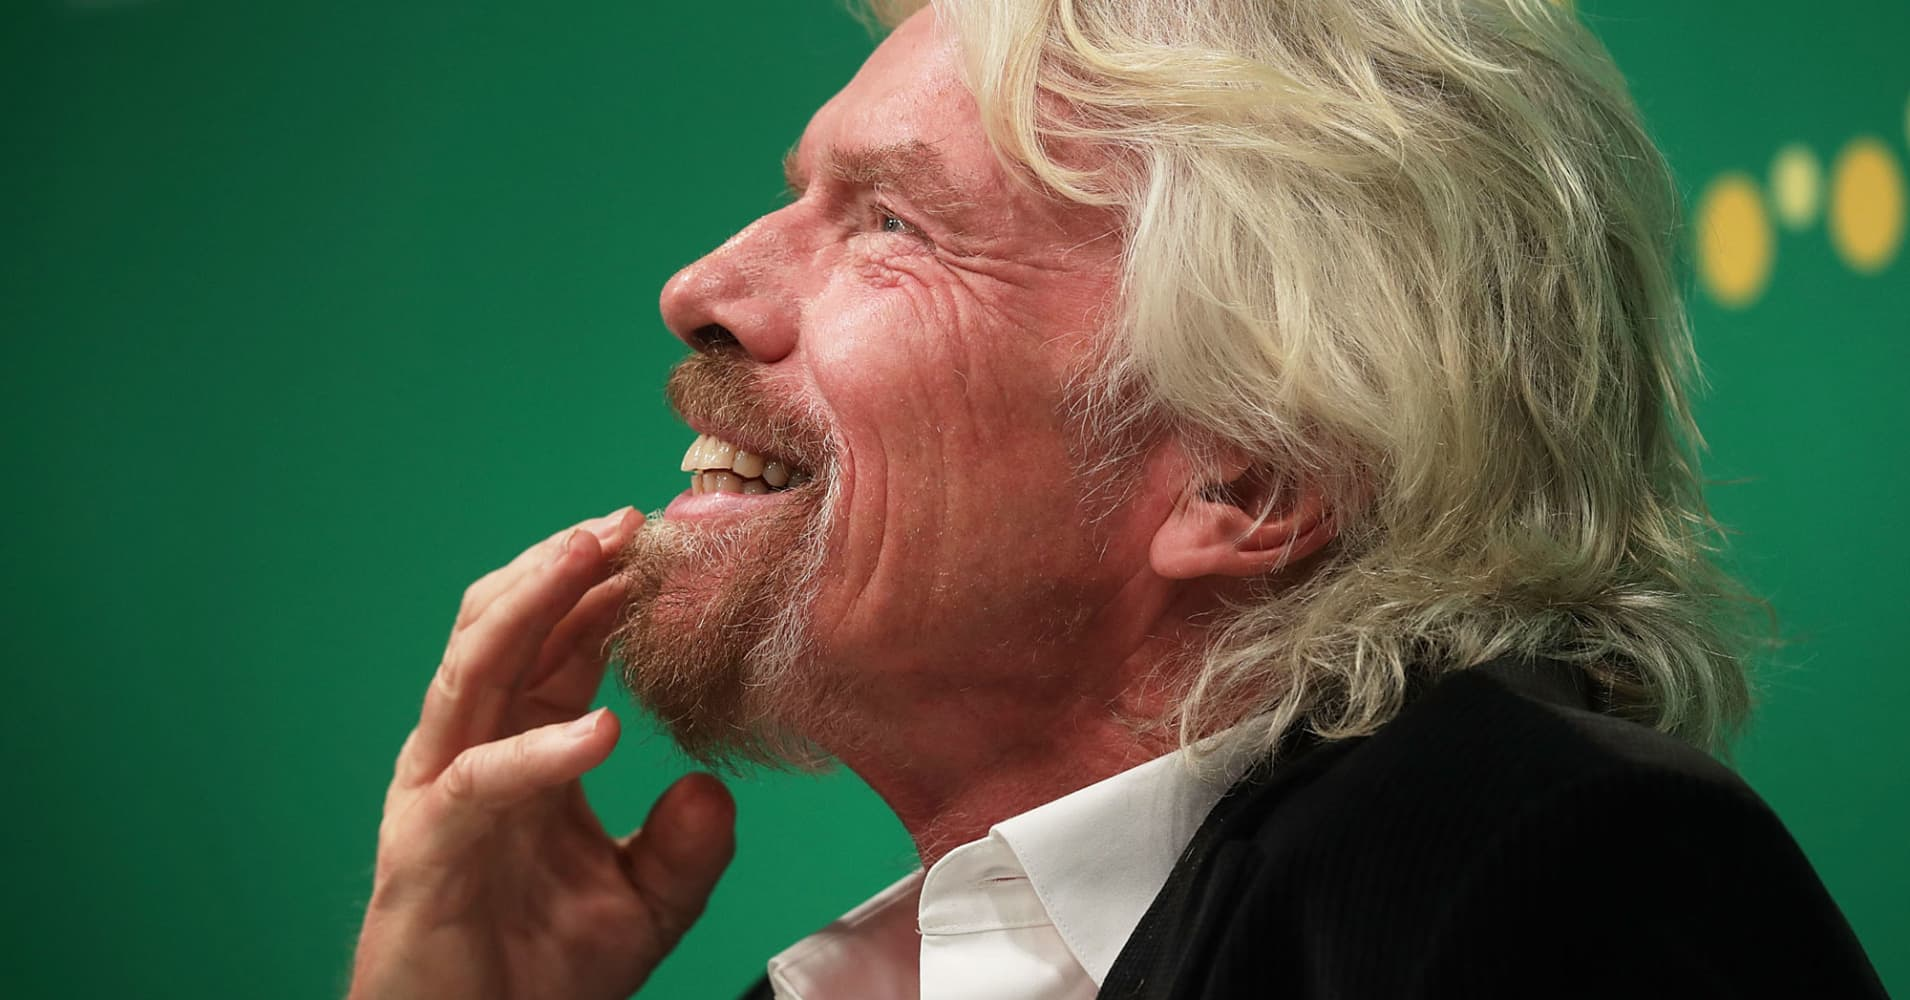 Richard Branson calls for second Brexit referendum based on 'real facts'